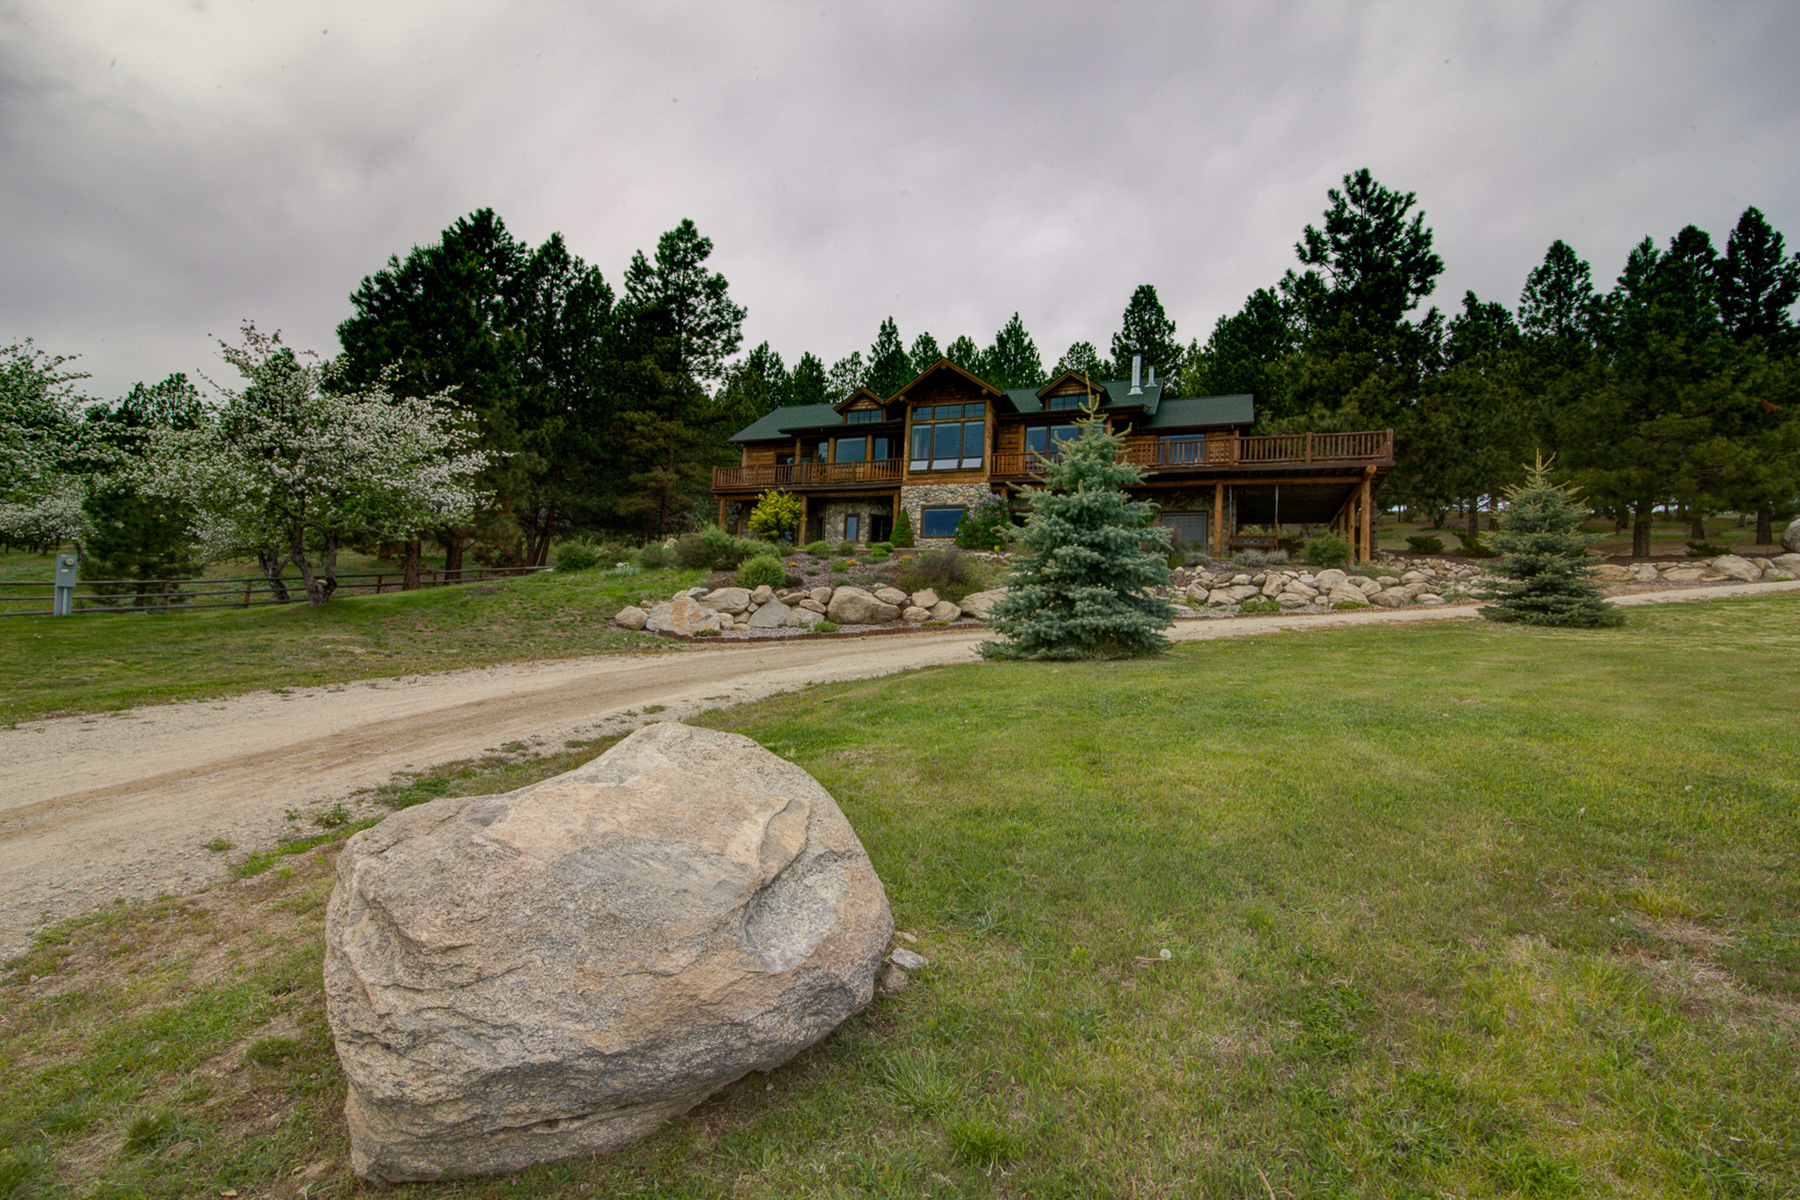 Additional photo for property listing at 564 Stags Leap Road 564  Stags Leap Rd Darby, Montana 59829 United States